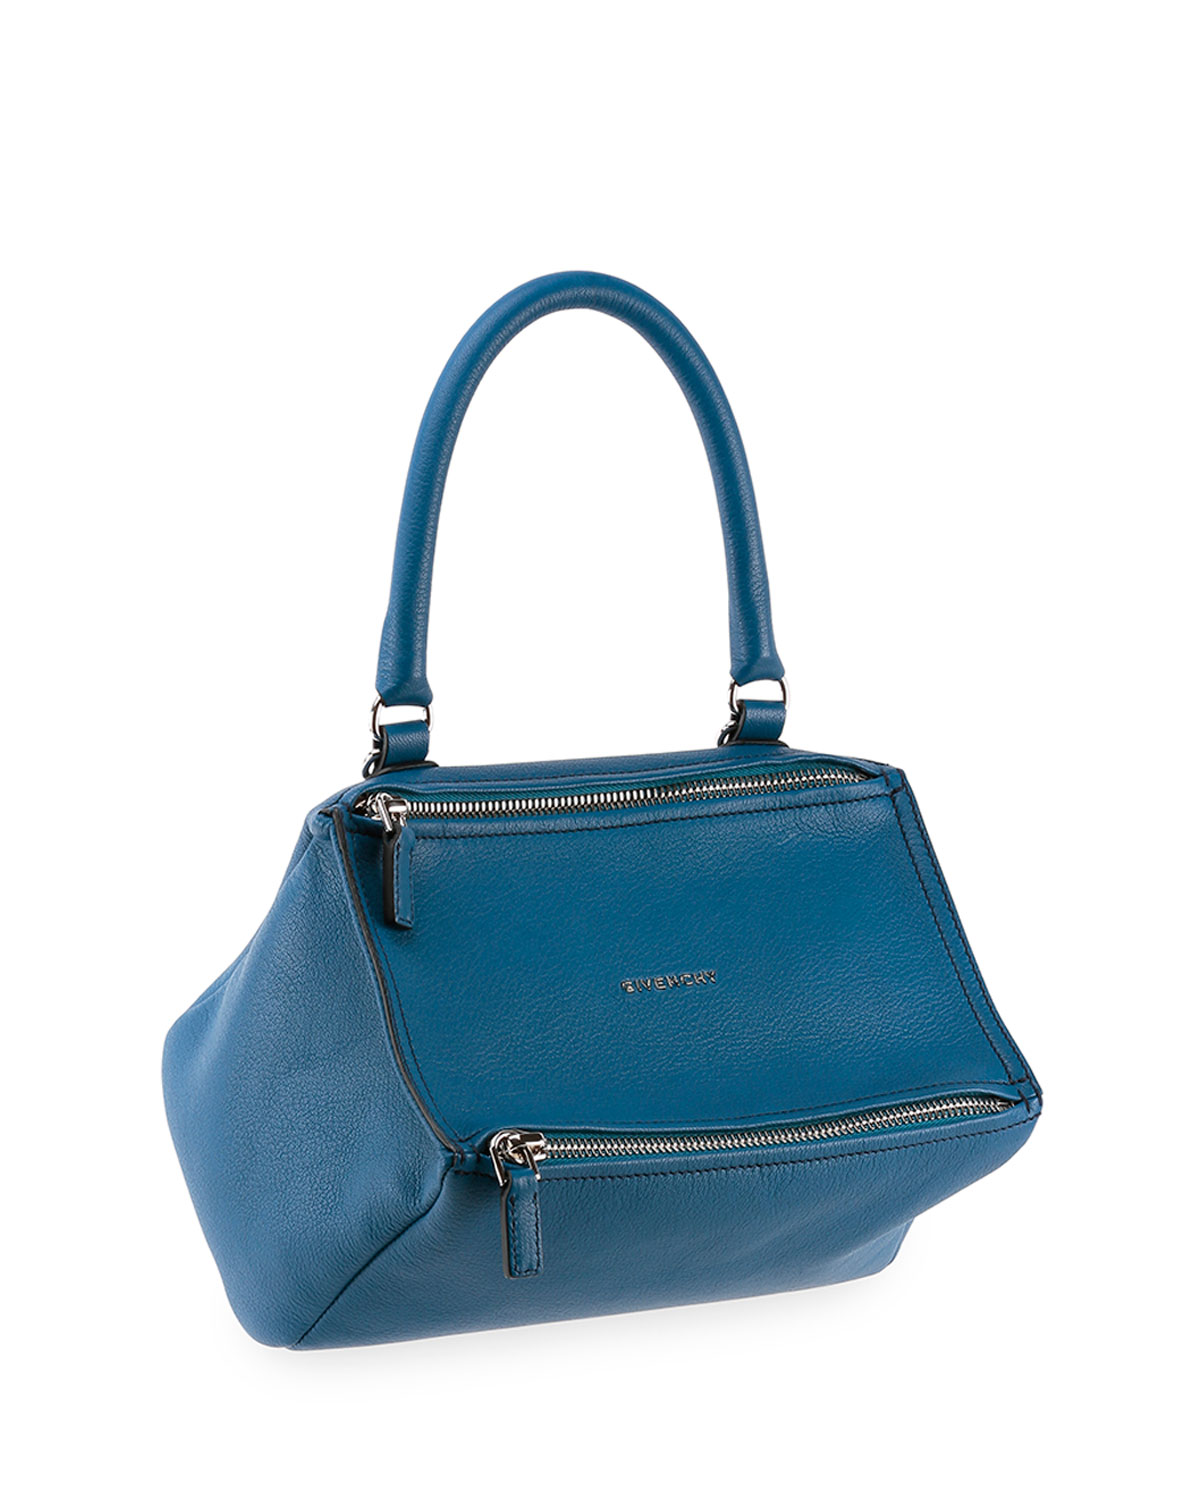 8447a344fbc Givenchy Pandora Small Leather Shoulder Bag, Blue | Neiman Marcus